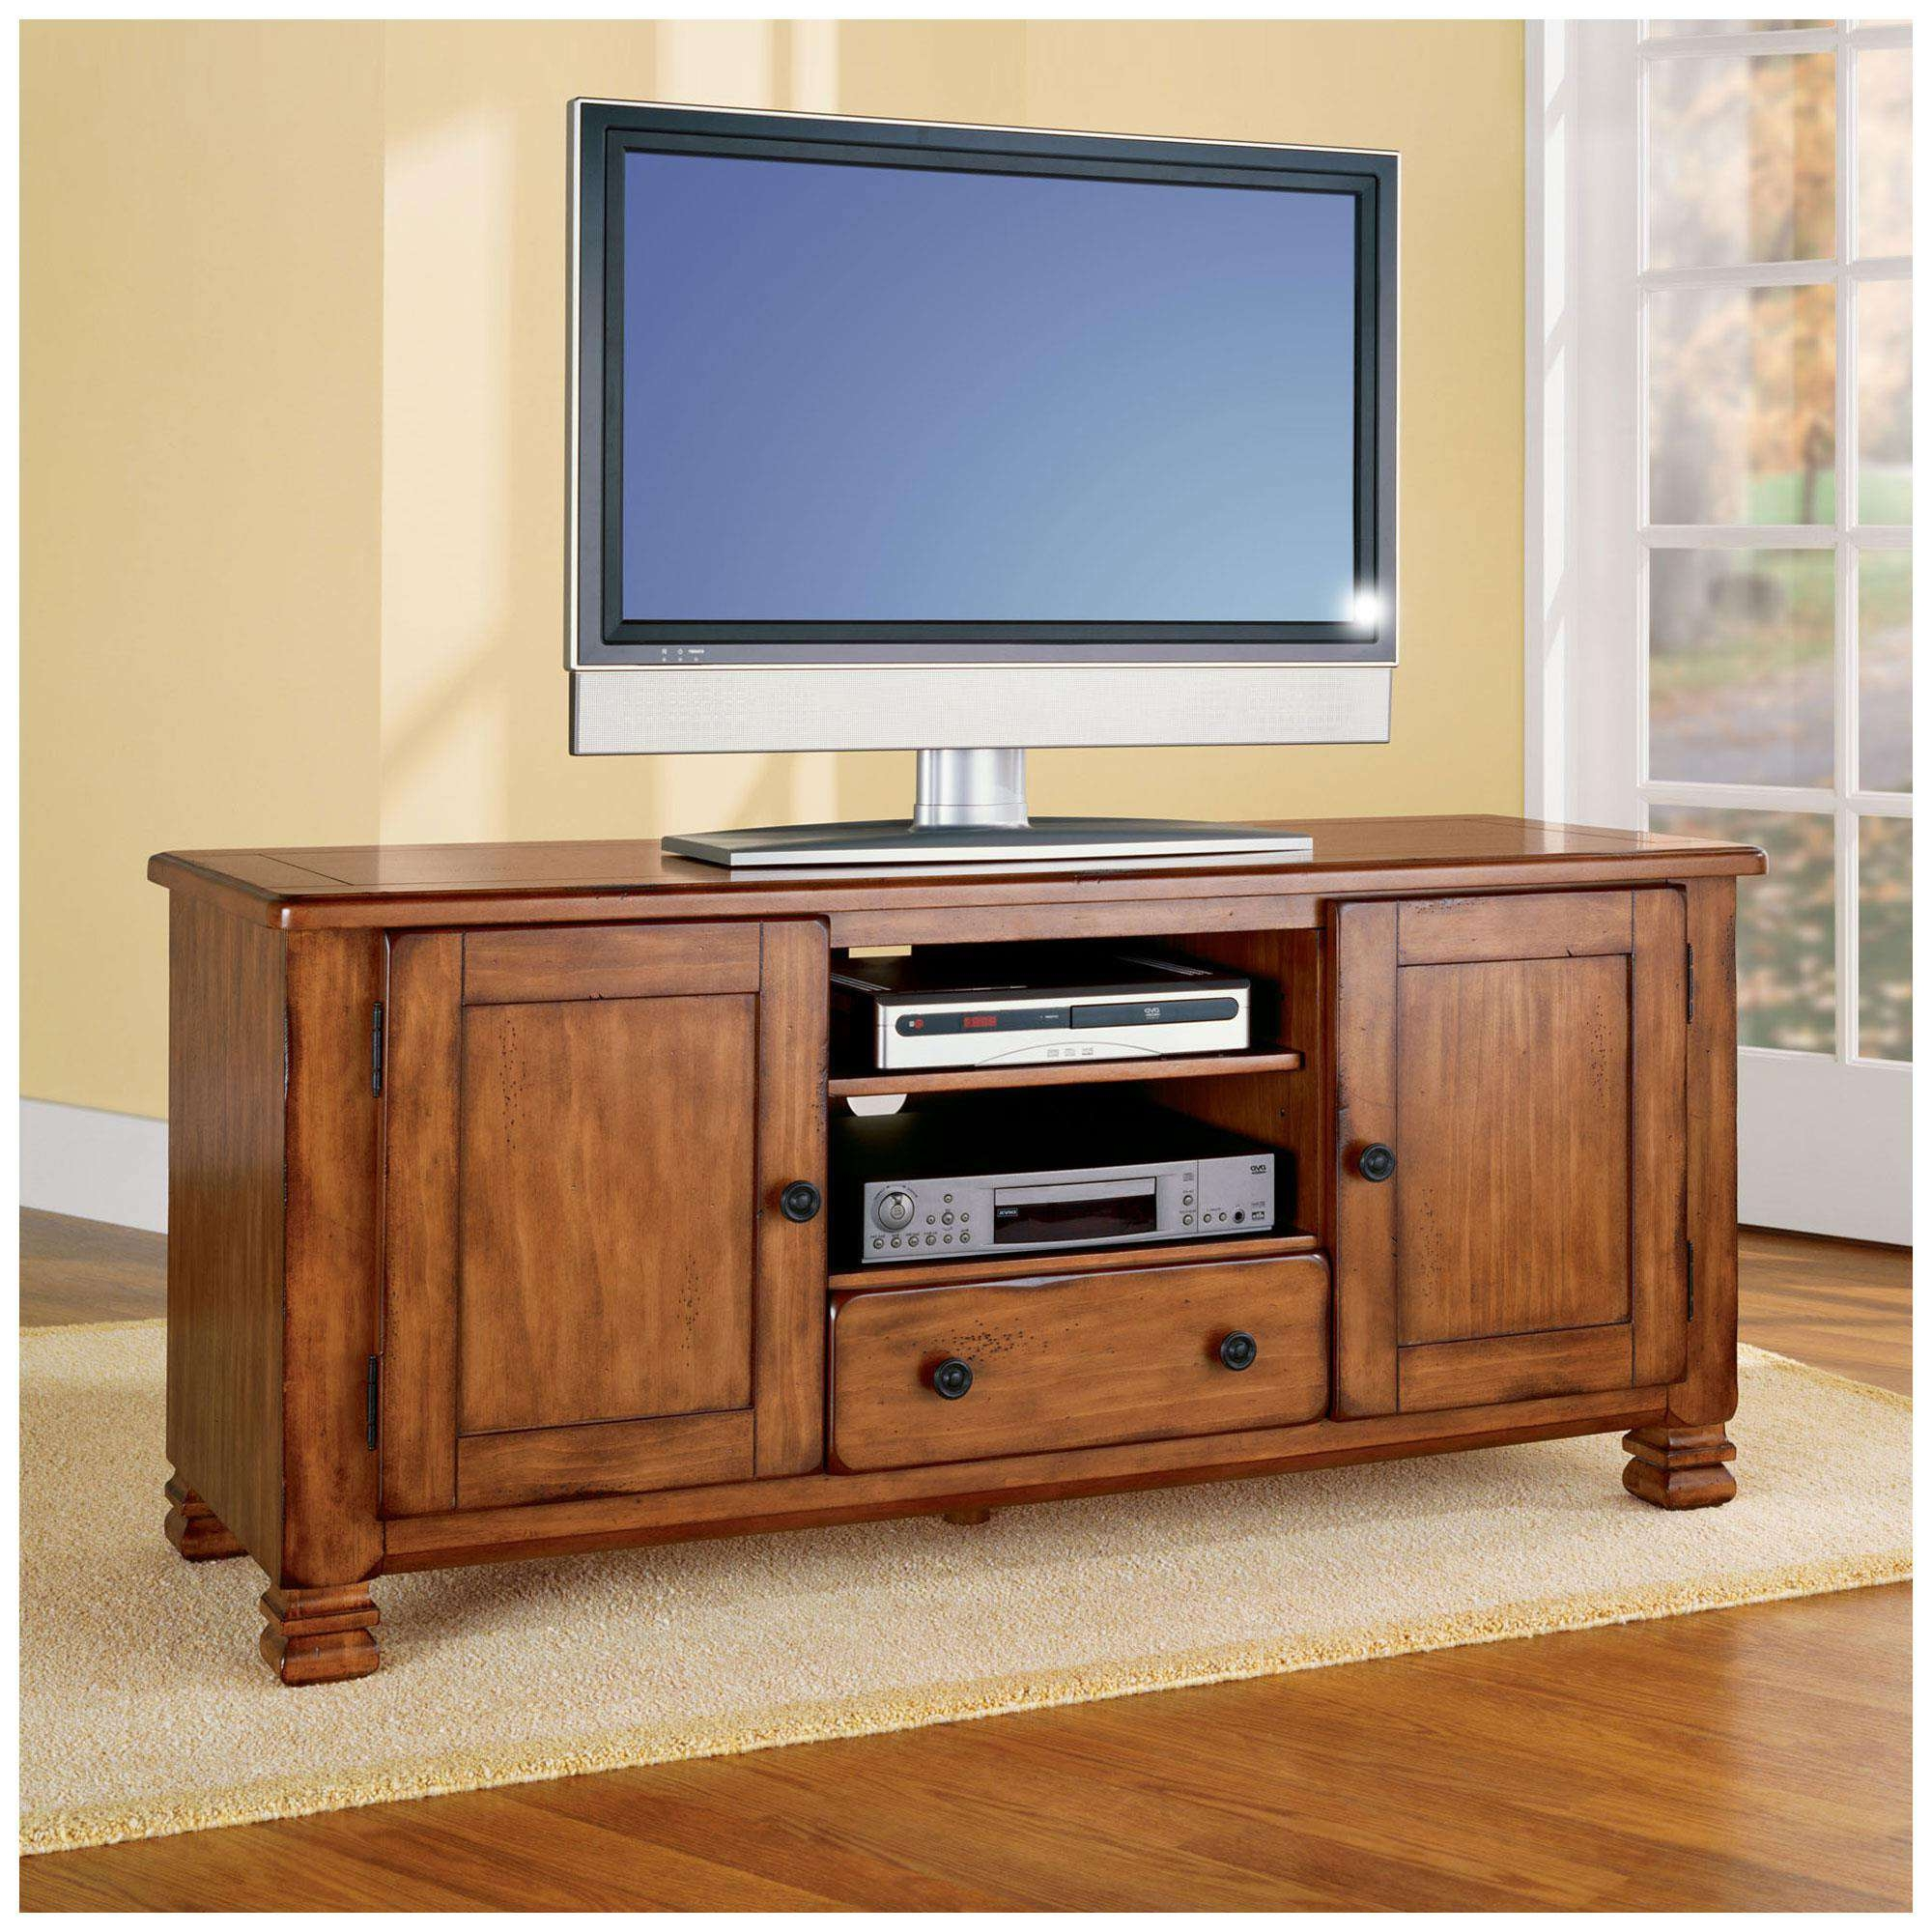 79 Literarywondrous Light Wood Tv Stand Photo Design Home Stands With Light Brown Tv Stands (View 1 of 20)